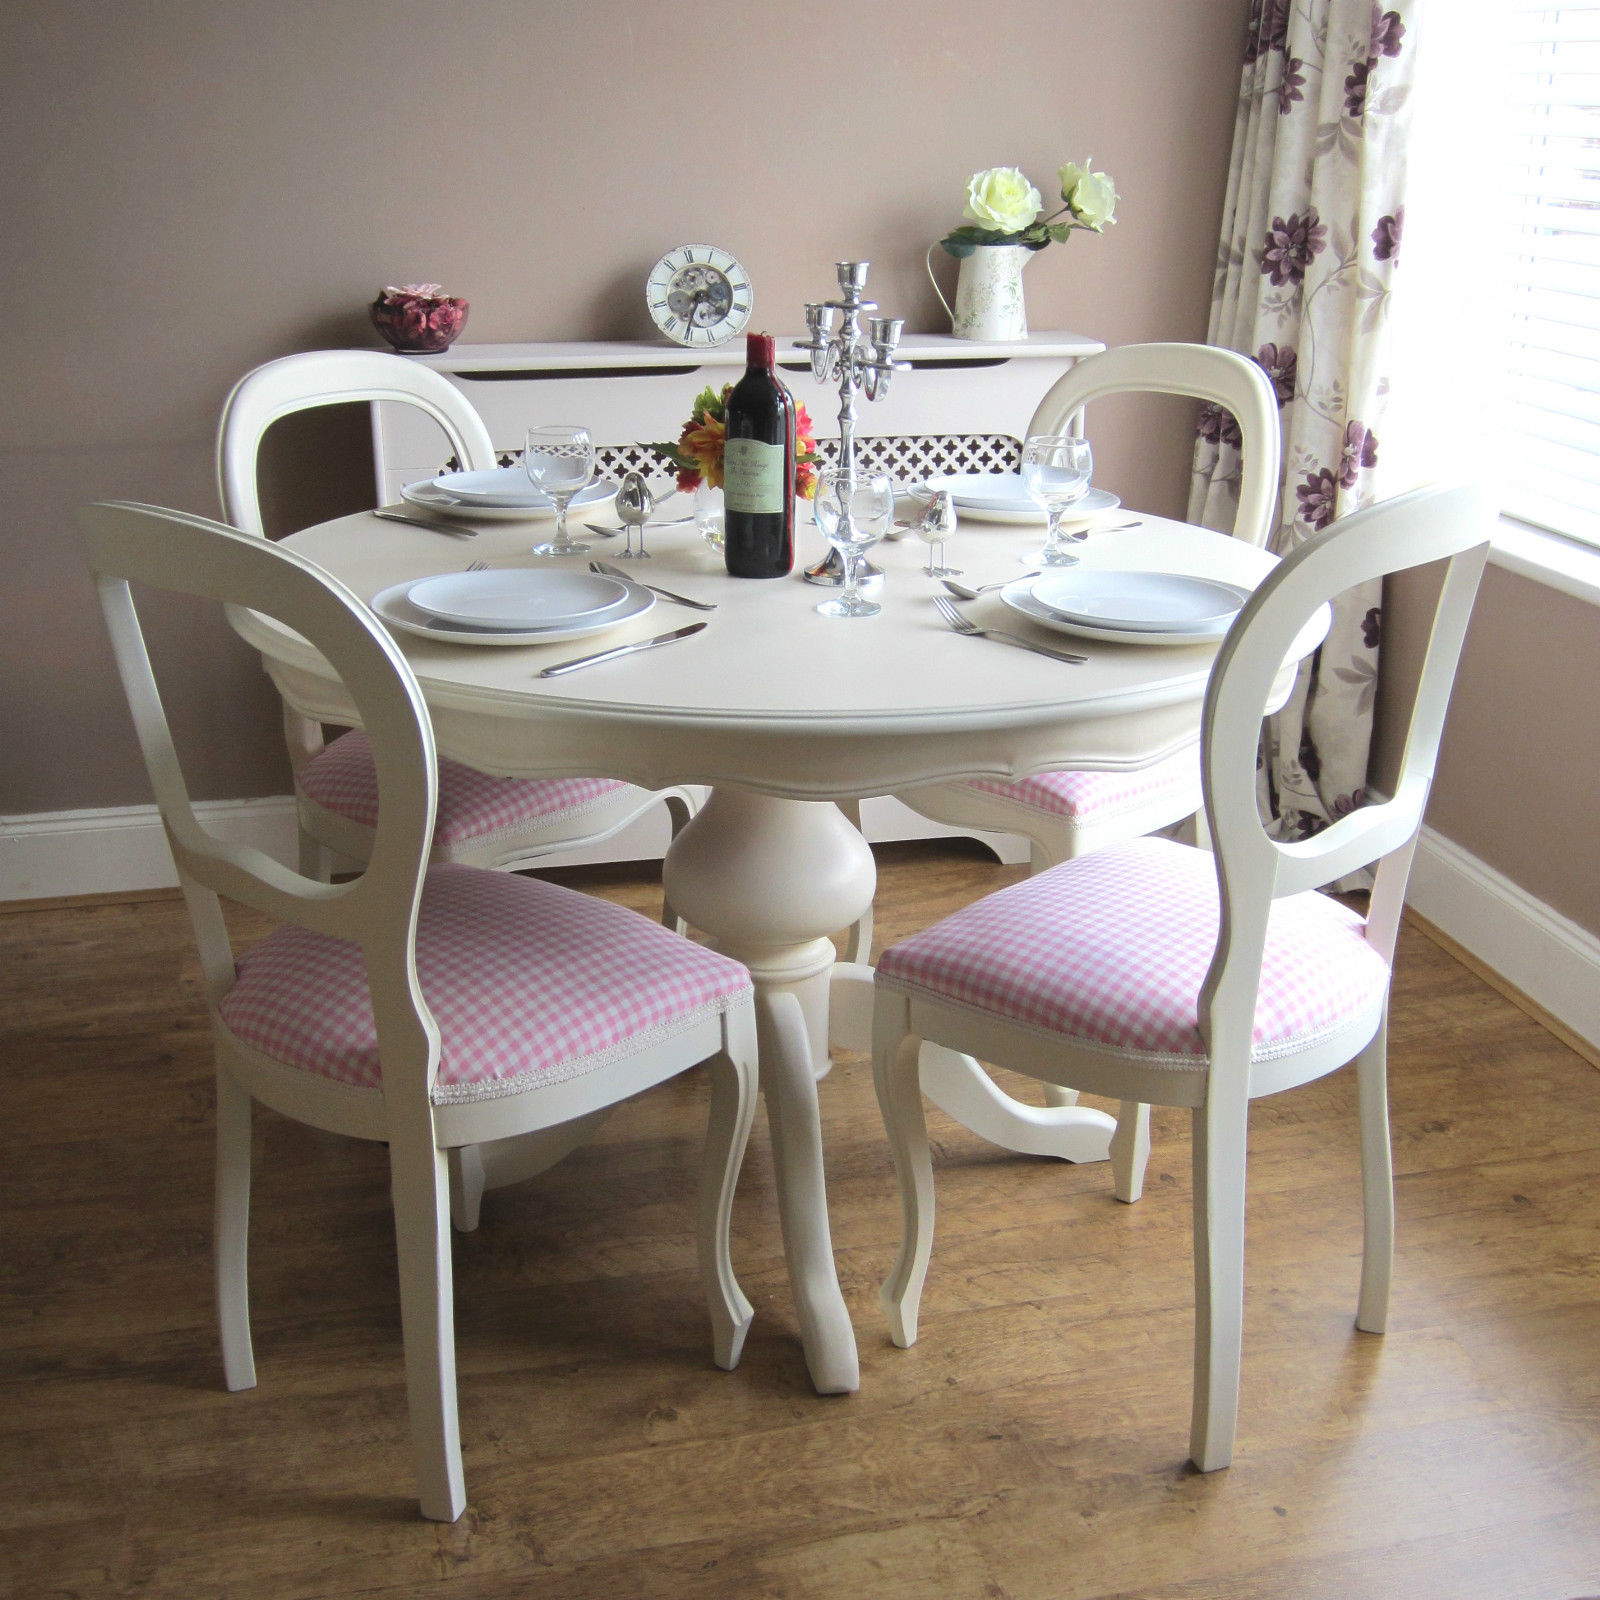 Charmant Shabby Chic Table And Chairs | EBay